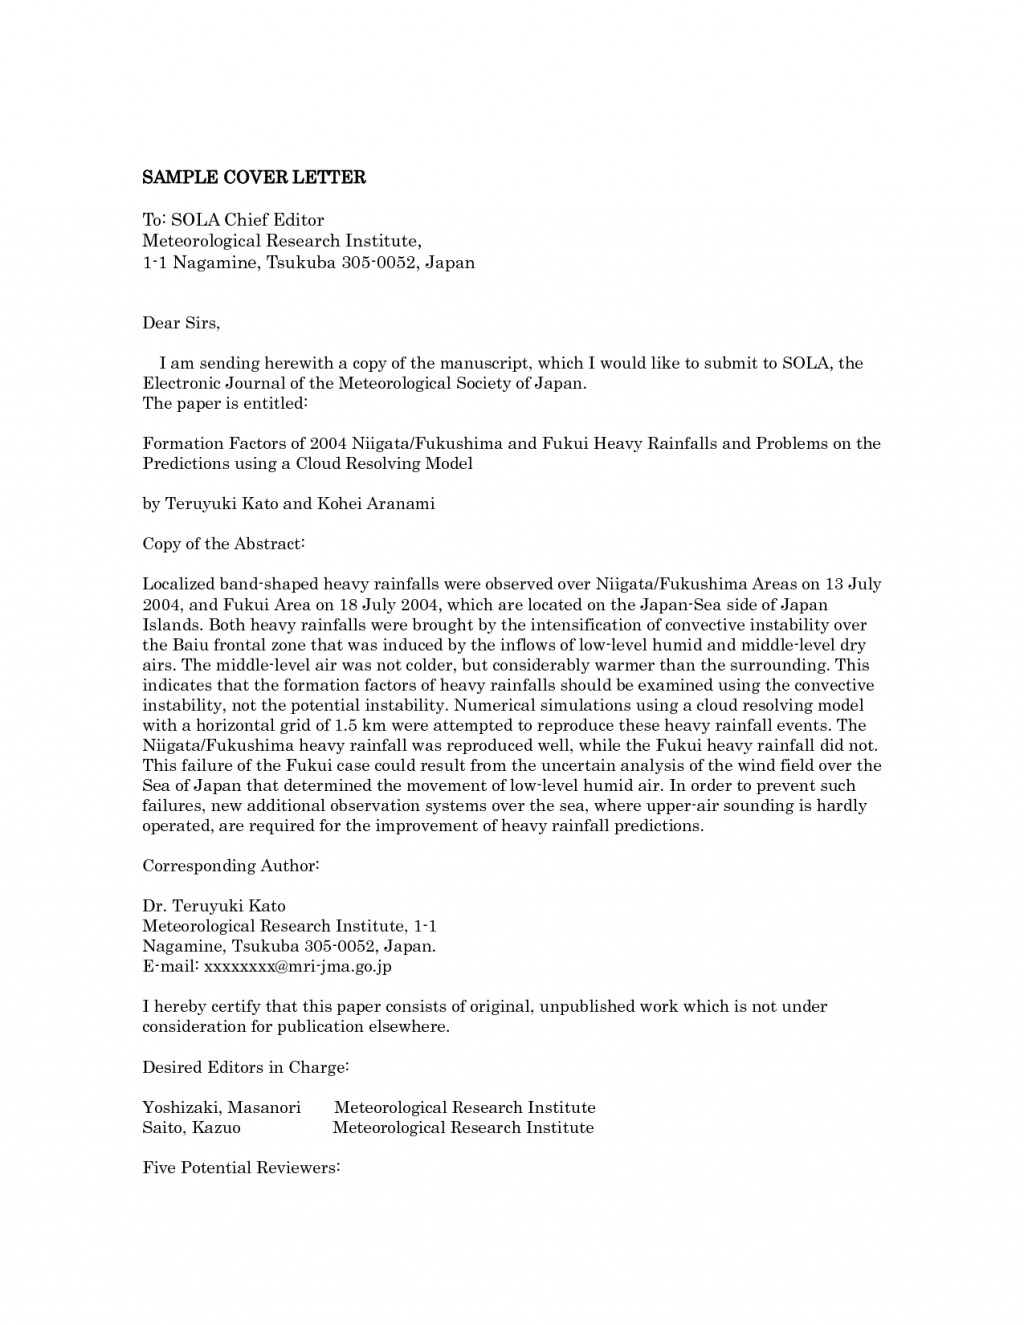 014 Research Paper Editor Cover Letter Breathtaking Free Editing Software On Text Large